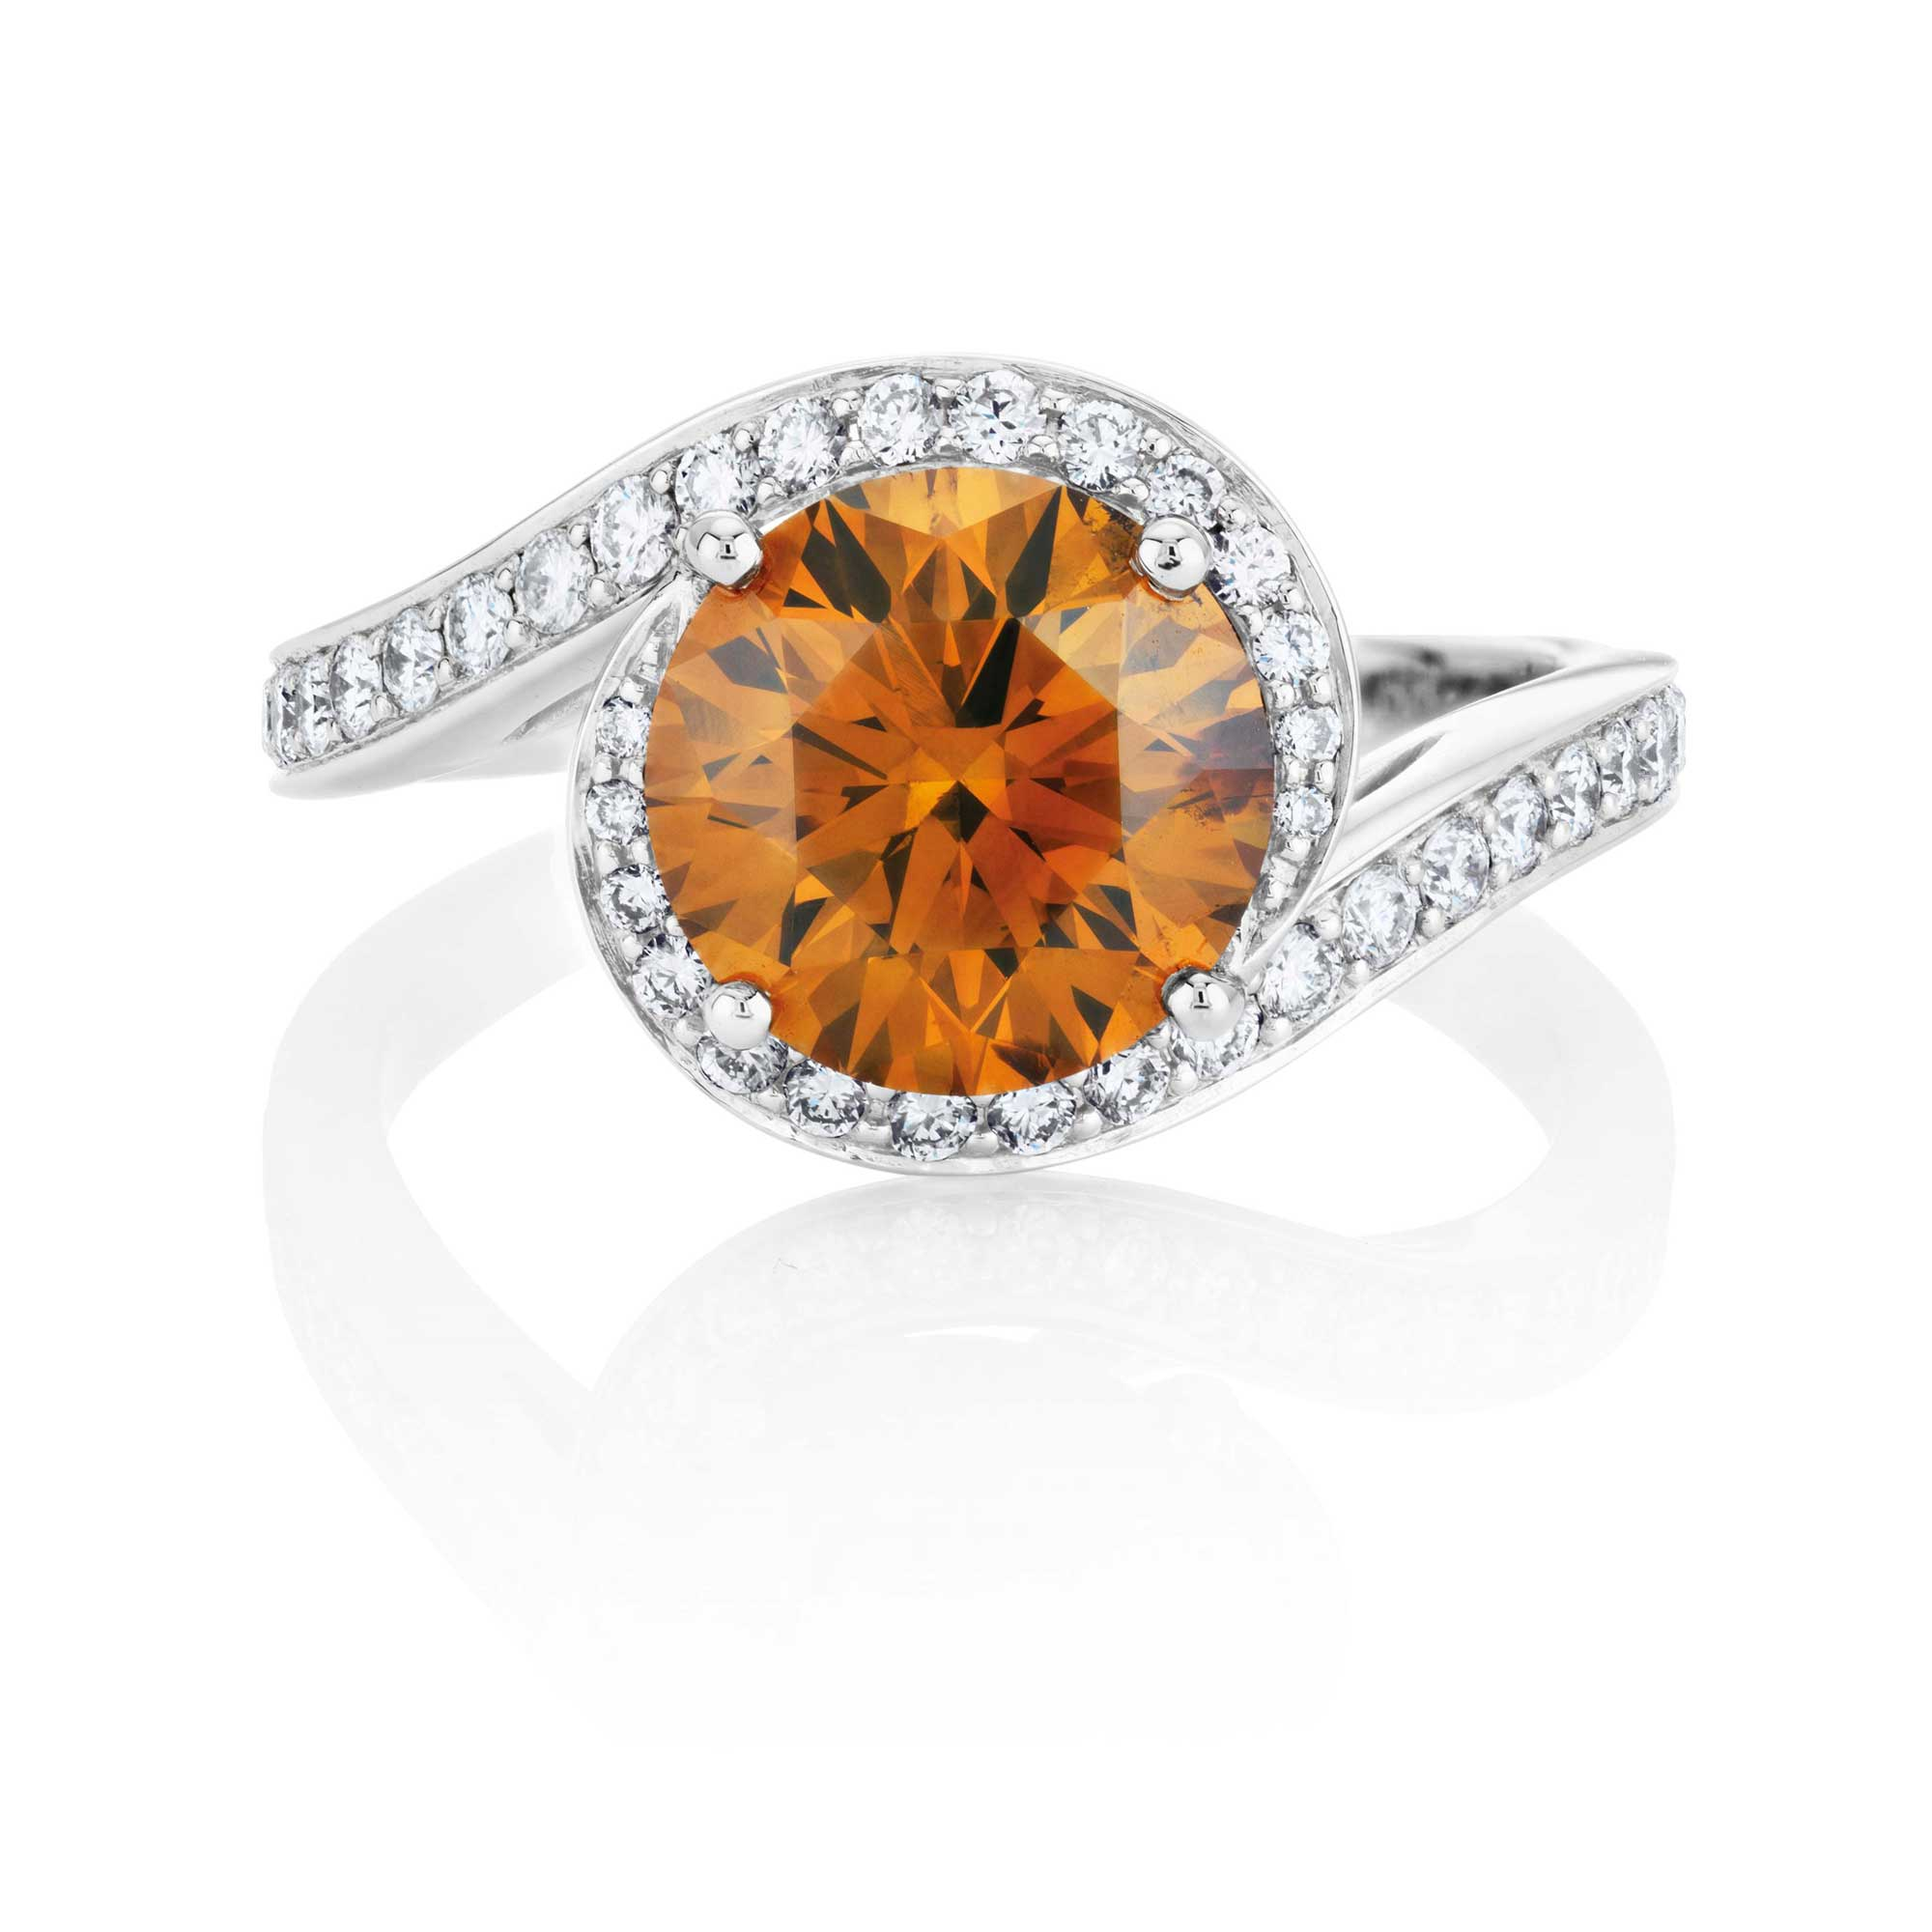 david over handmade product set natural diamond rub london contemporary ring rings modern engagement orange ashton in